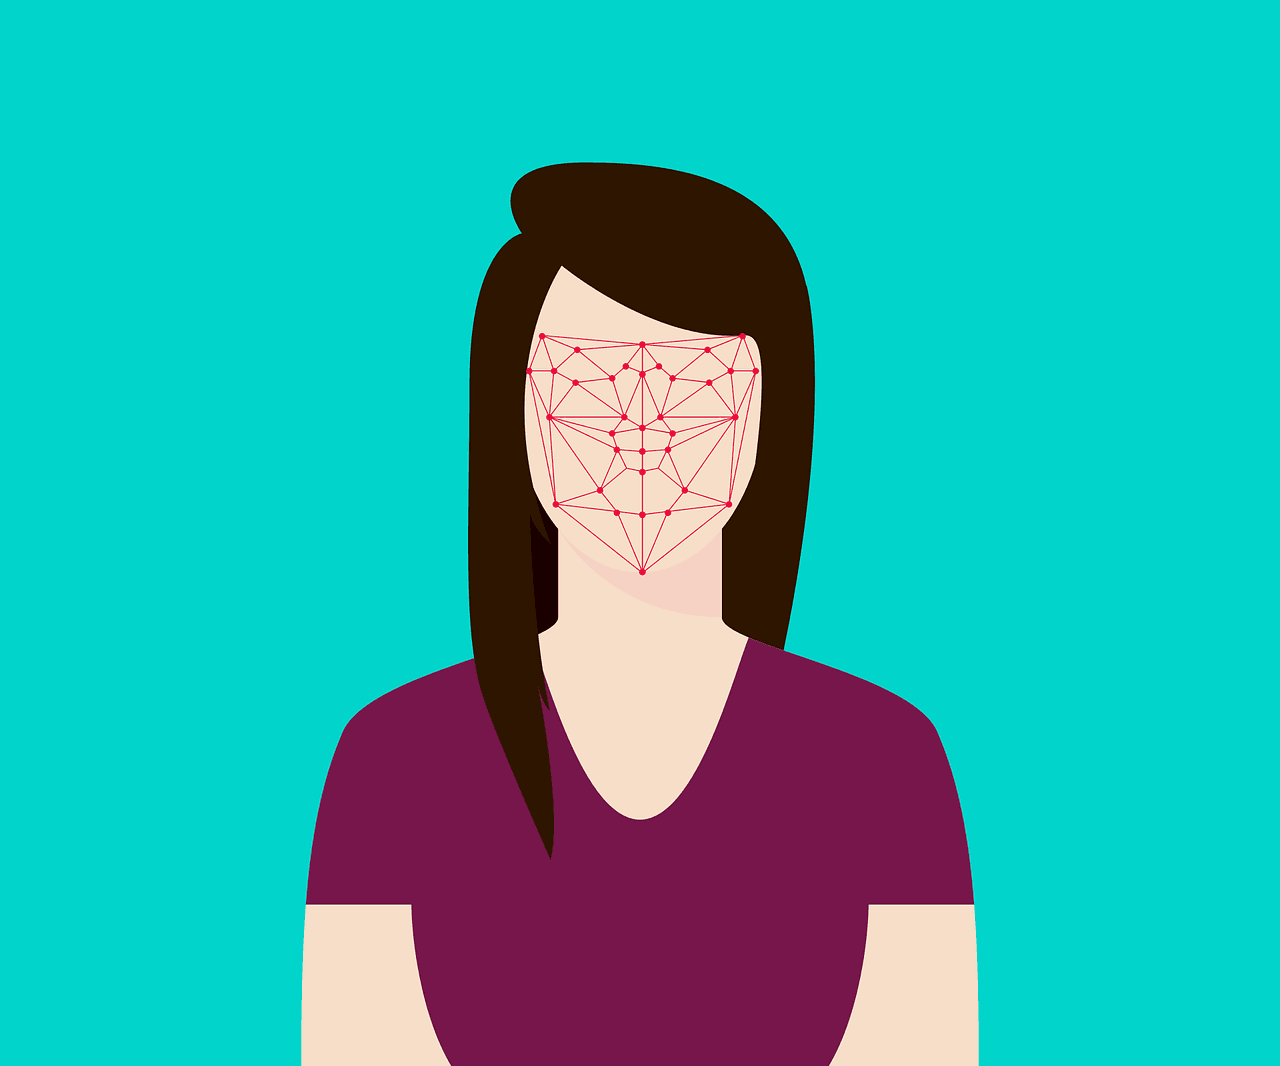 ban facial recognition surveillance mugshot spread of facial recognition